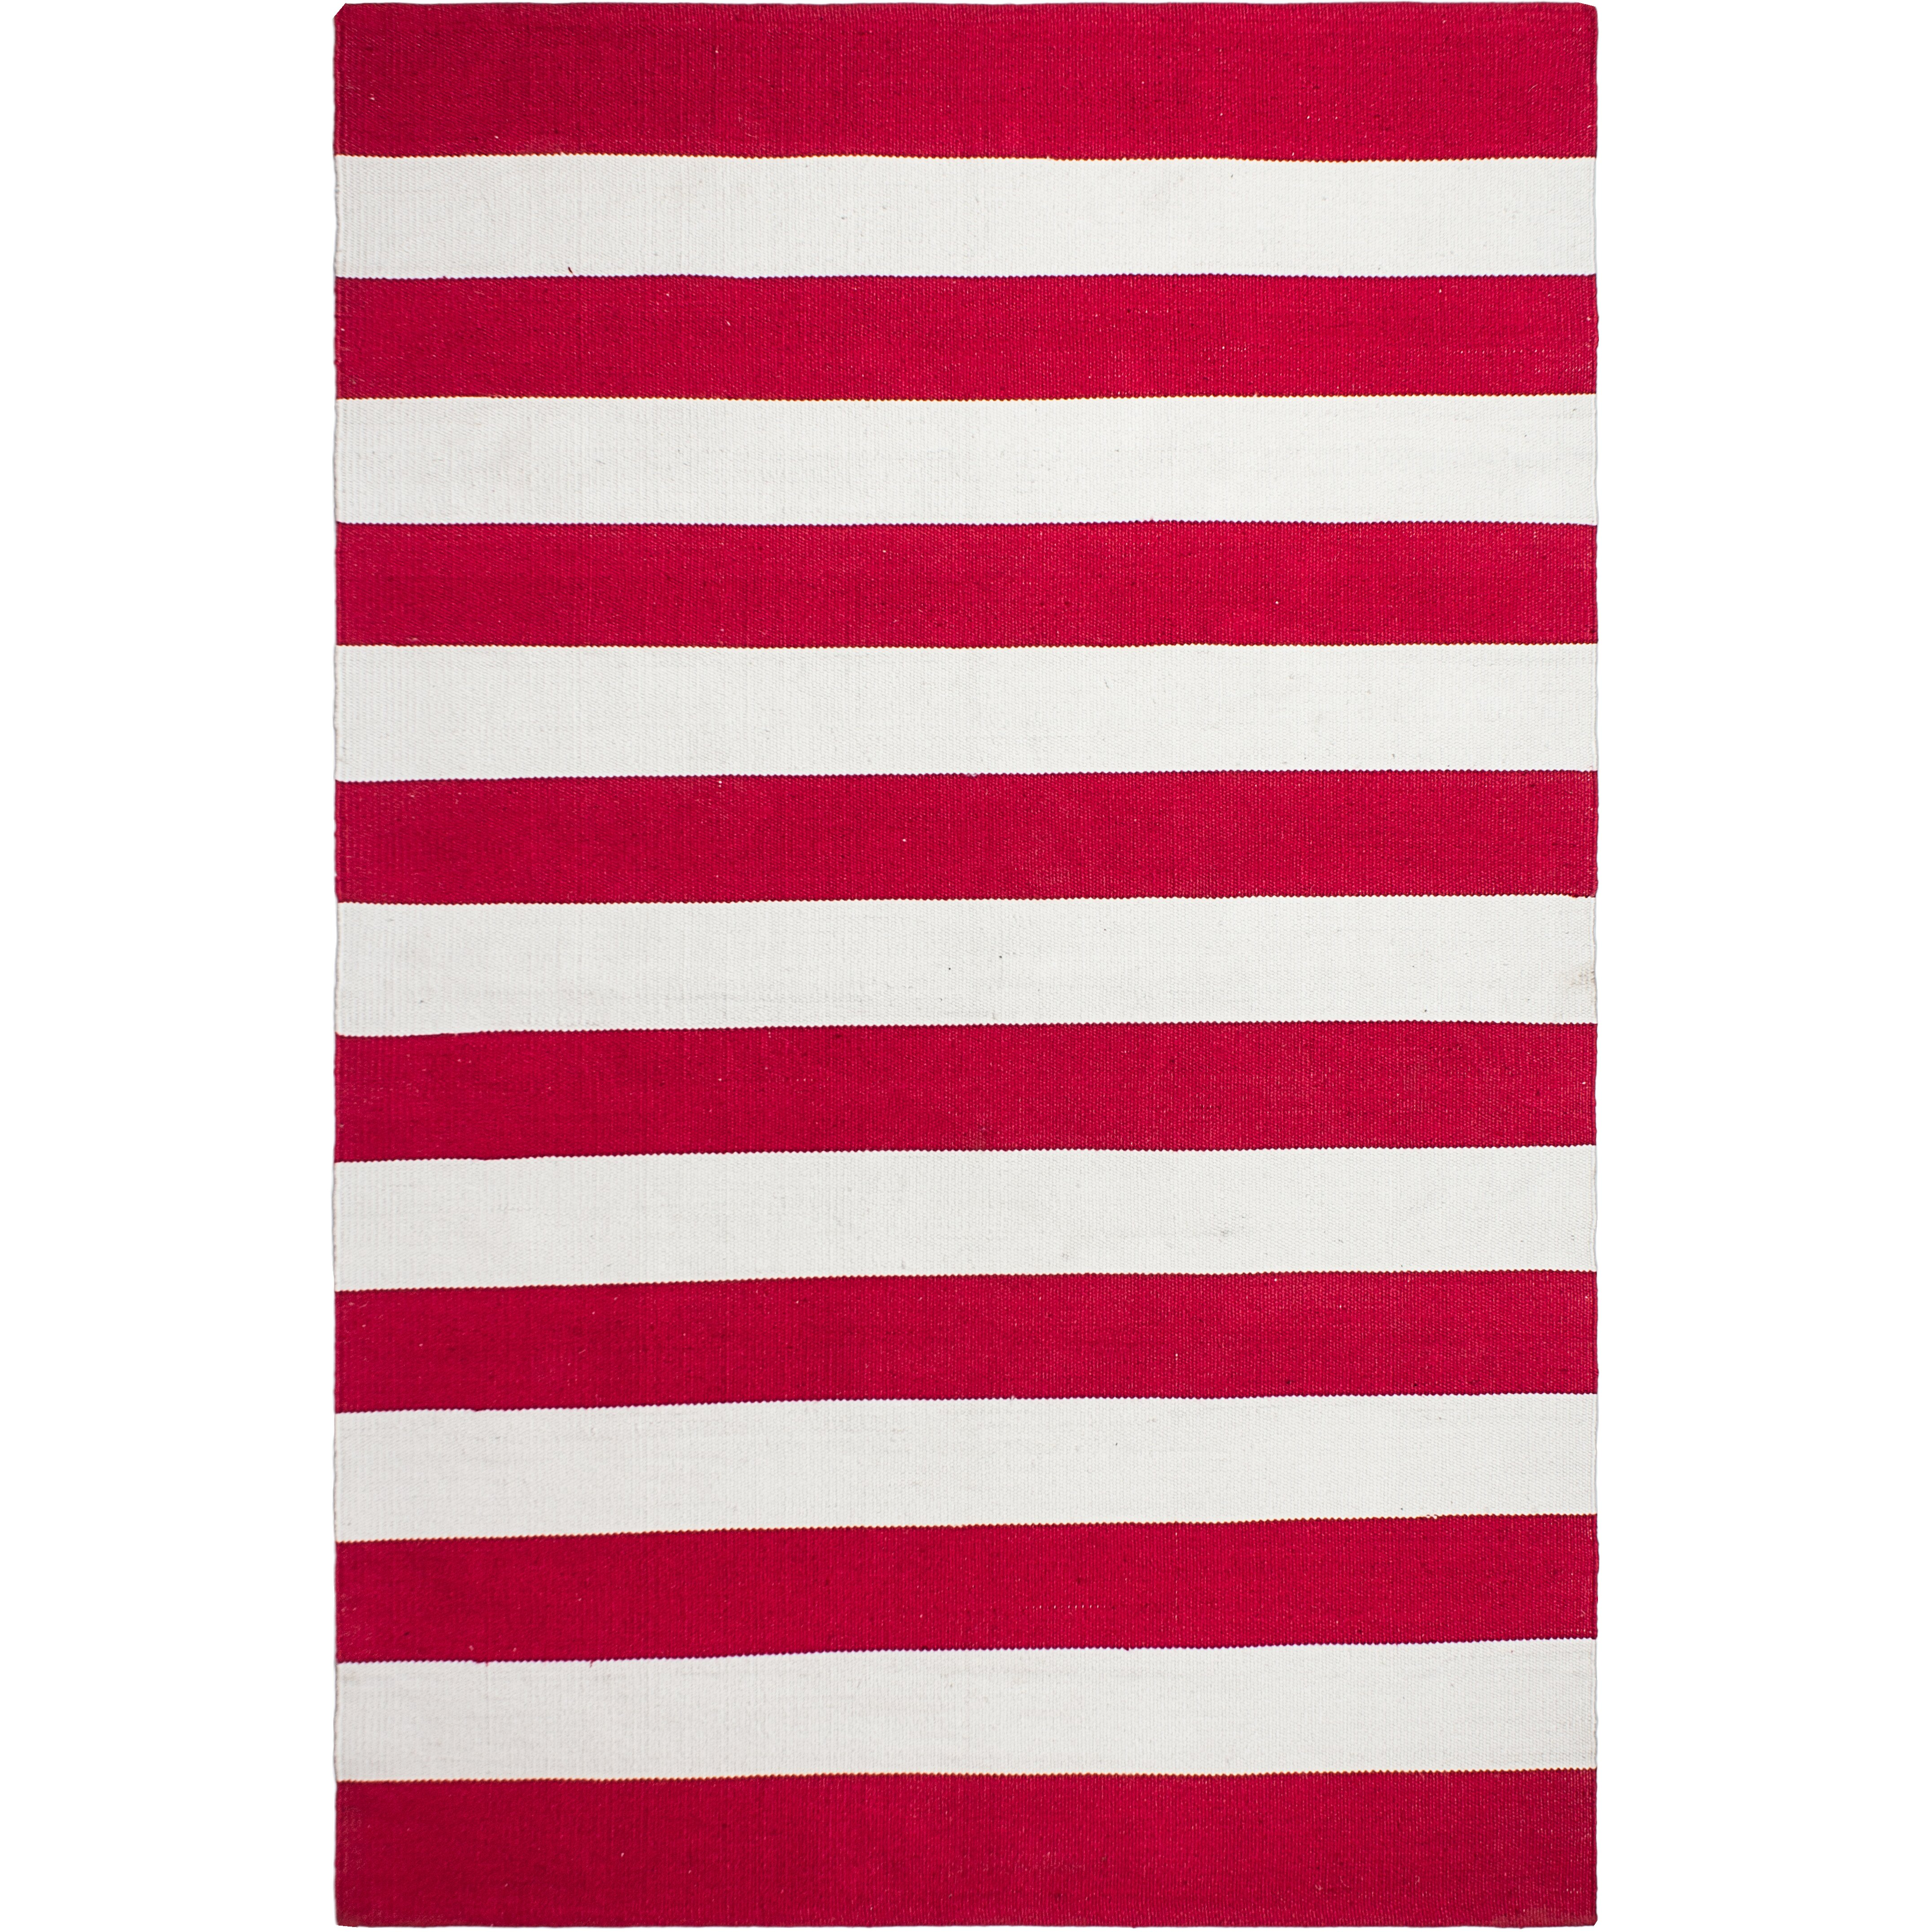 fab rugs nantucket striped red white indoor outdoor area